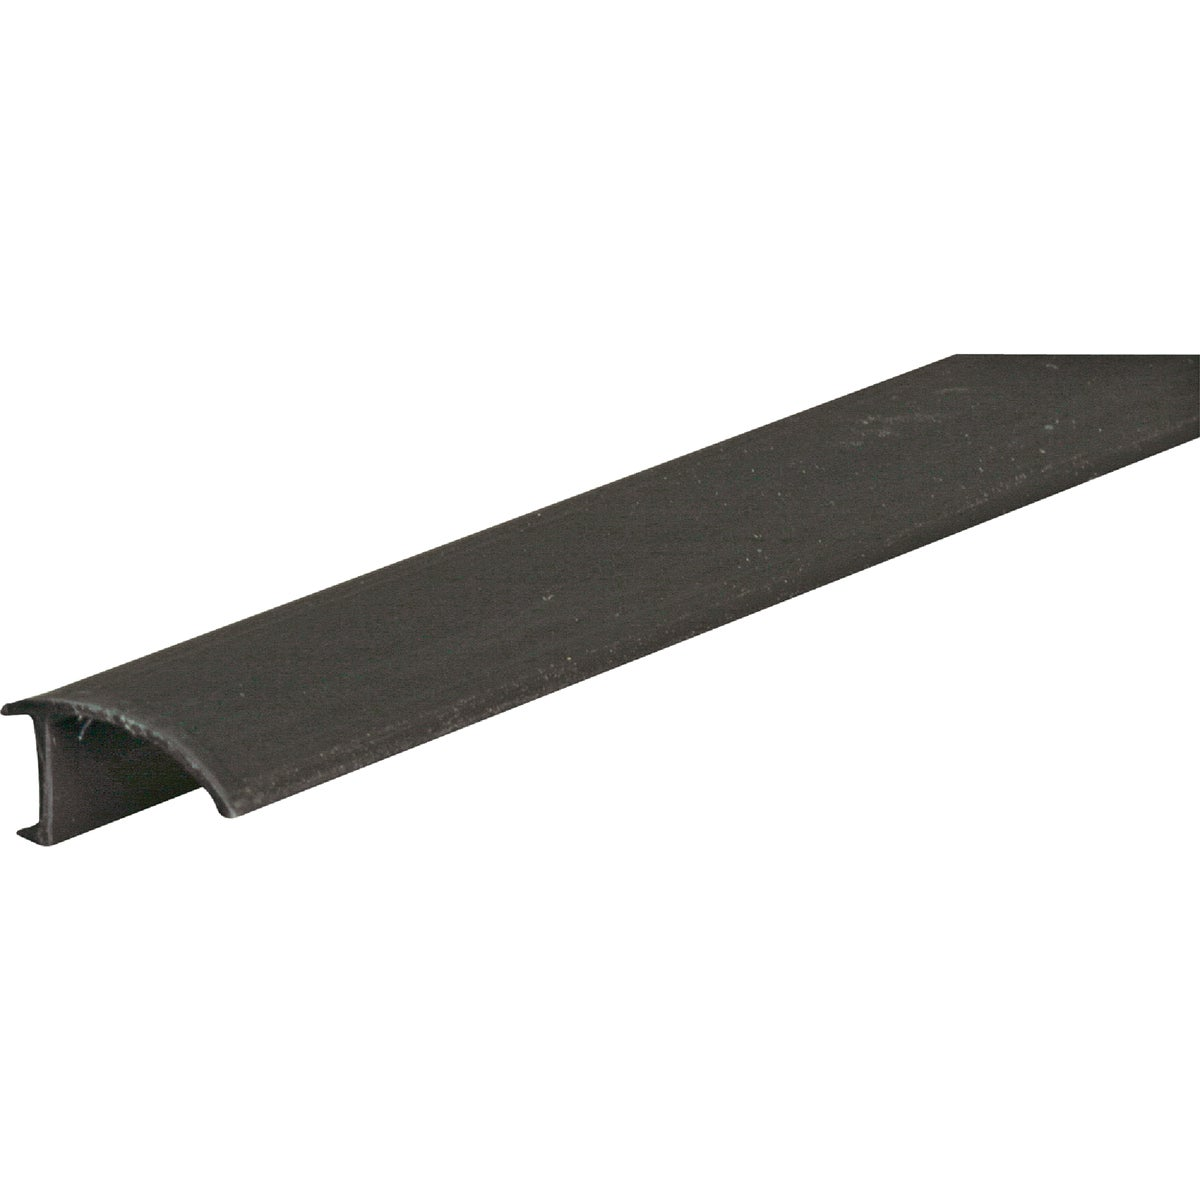 "72"" BLK RIGID SPLINE - P7810 by Prime Line Products"